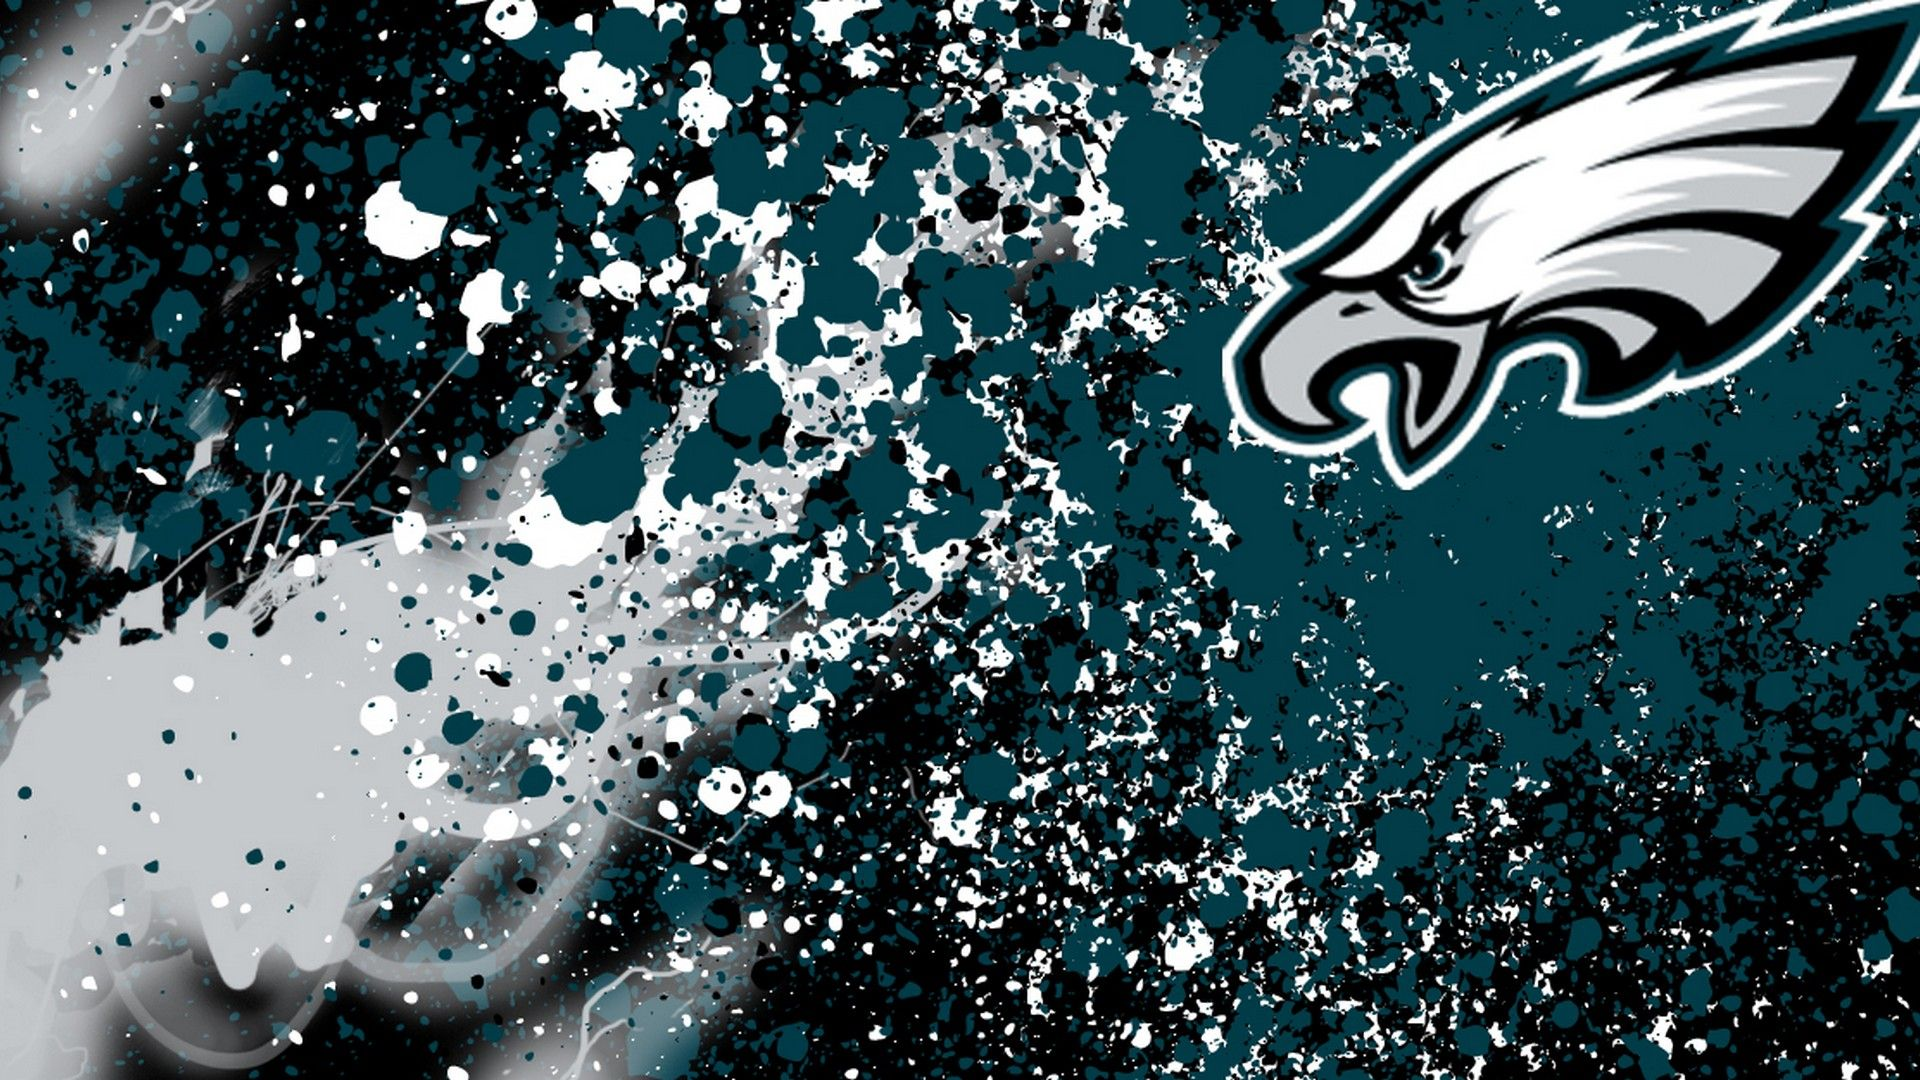 Phila Eagles Backgrounds HD Football wallpaper, Eagle